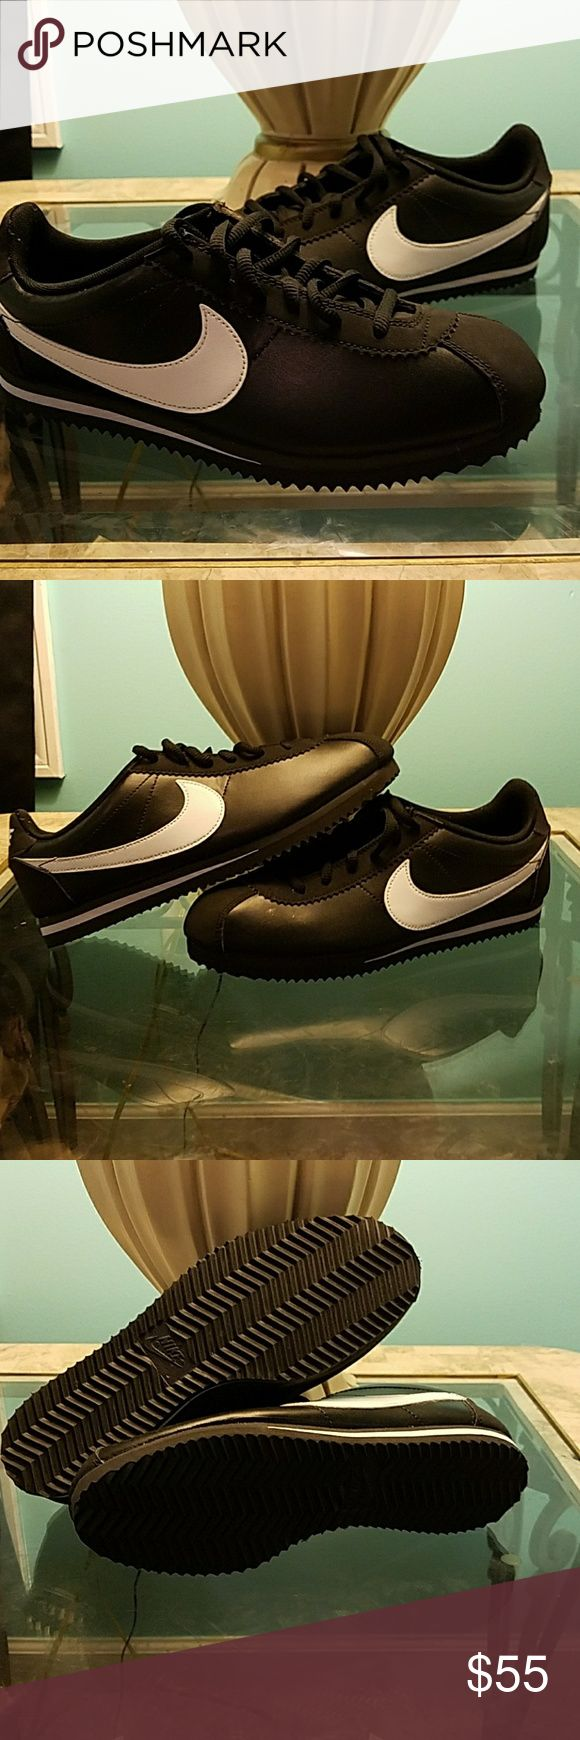 Nike Cortez Black and white Nike Cortez. Brand new! Nike Shoes Sneakers